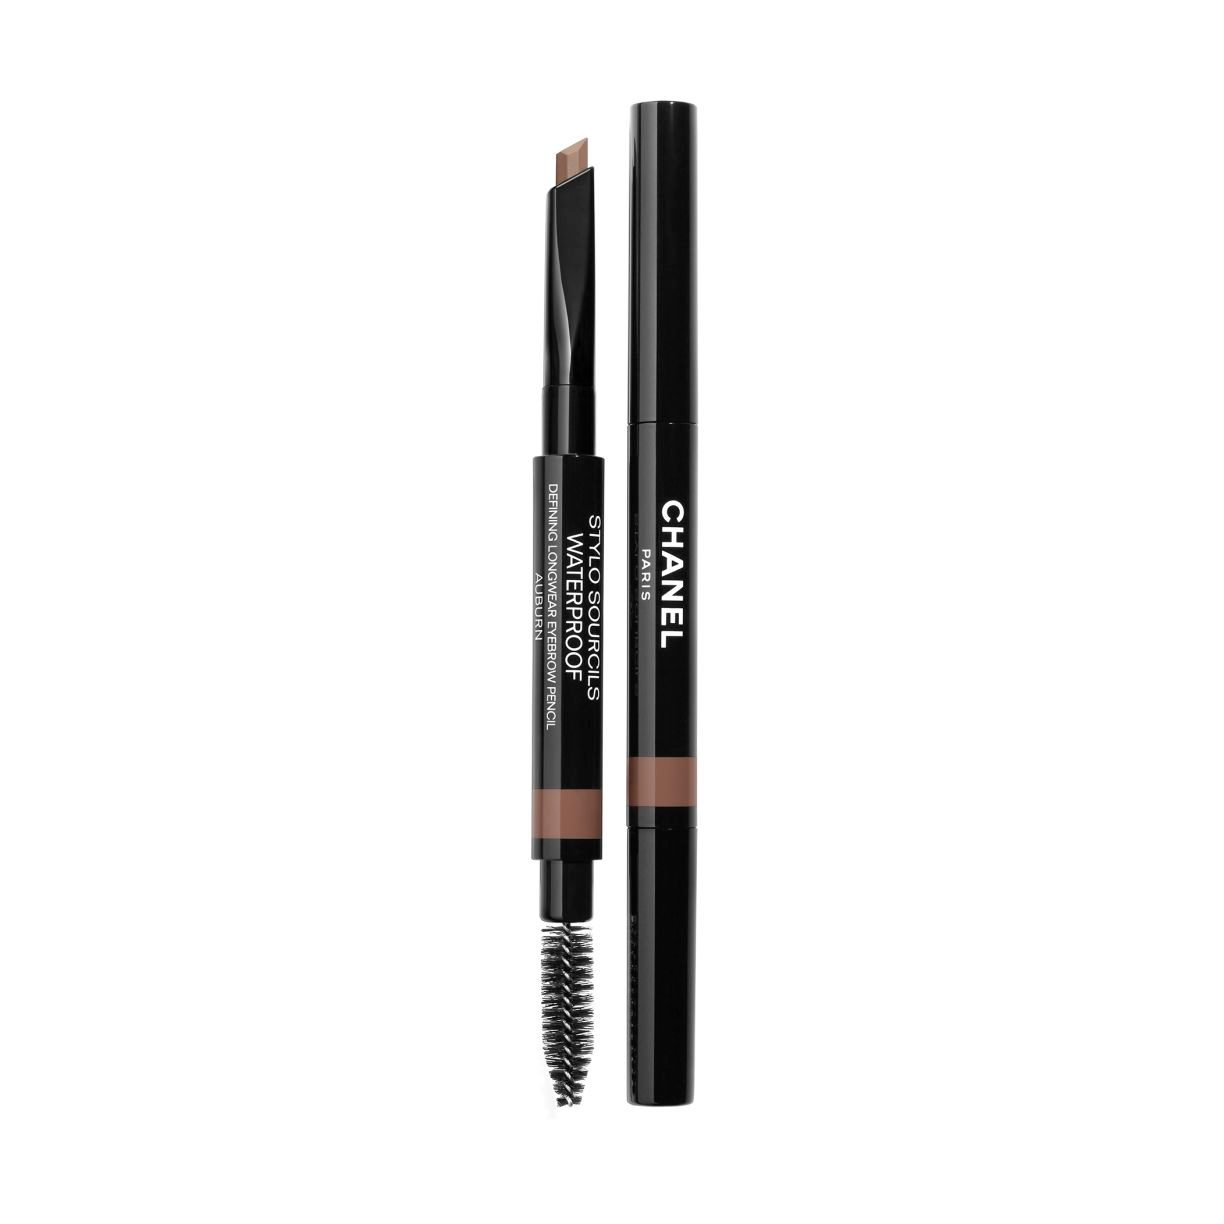 STYLO SOURCILS WATERPROOF